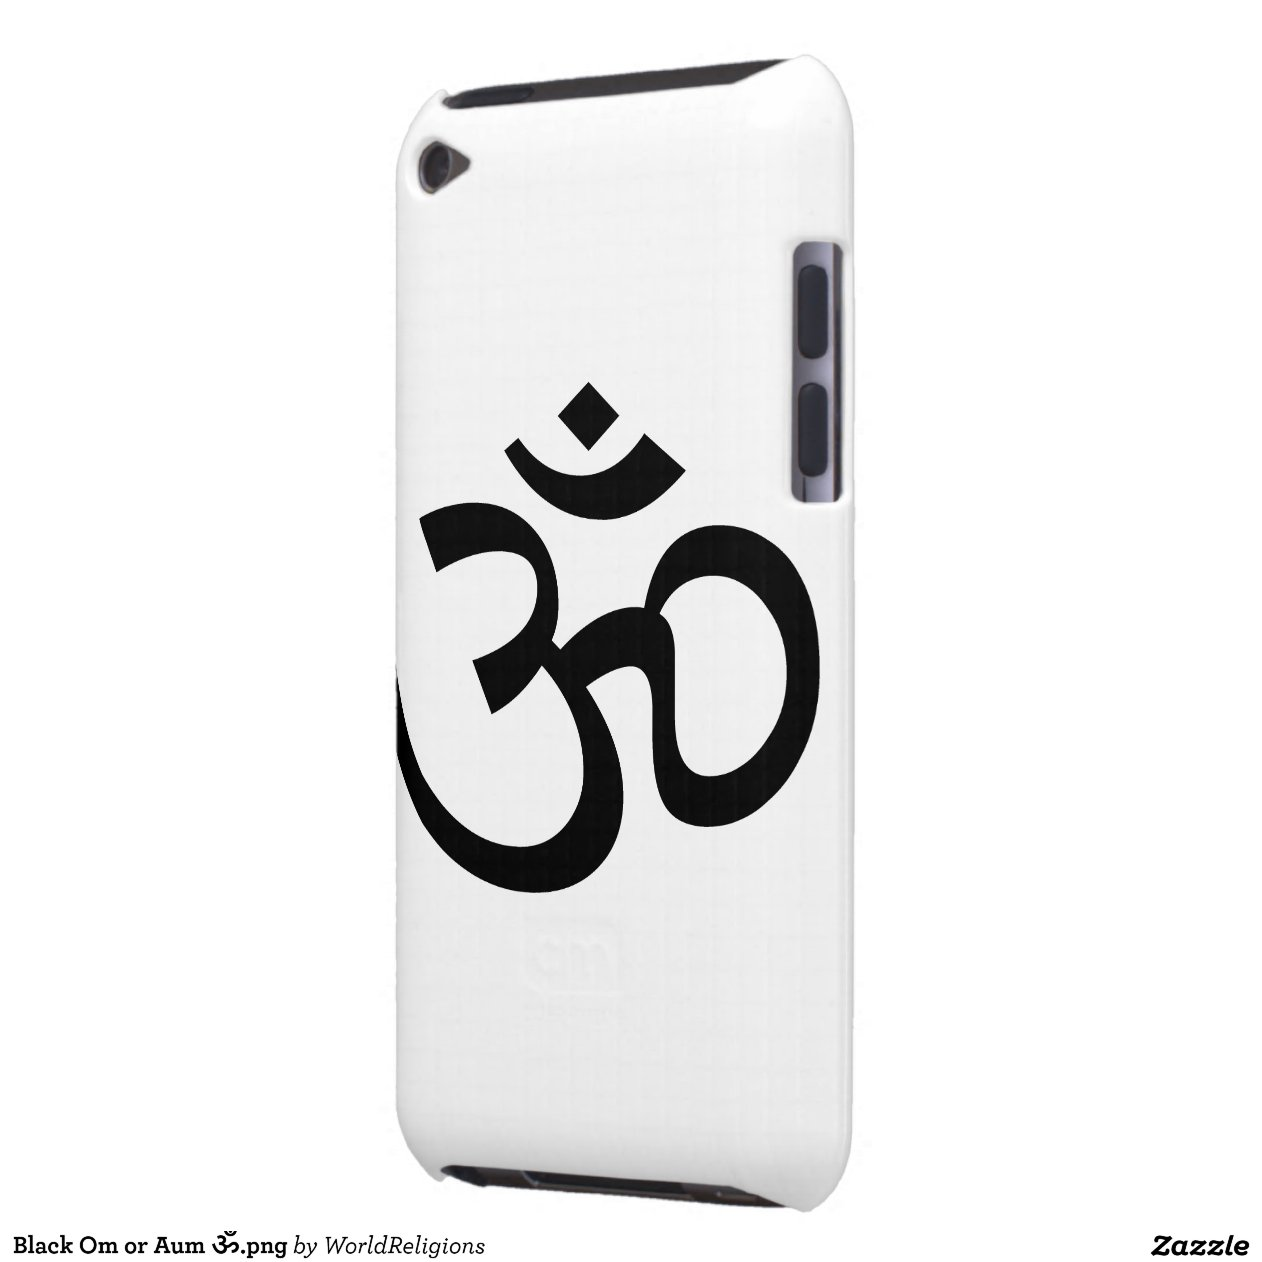 Yoga Symbols Png 2018 Images Pictures The Significance Of Om Aum